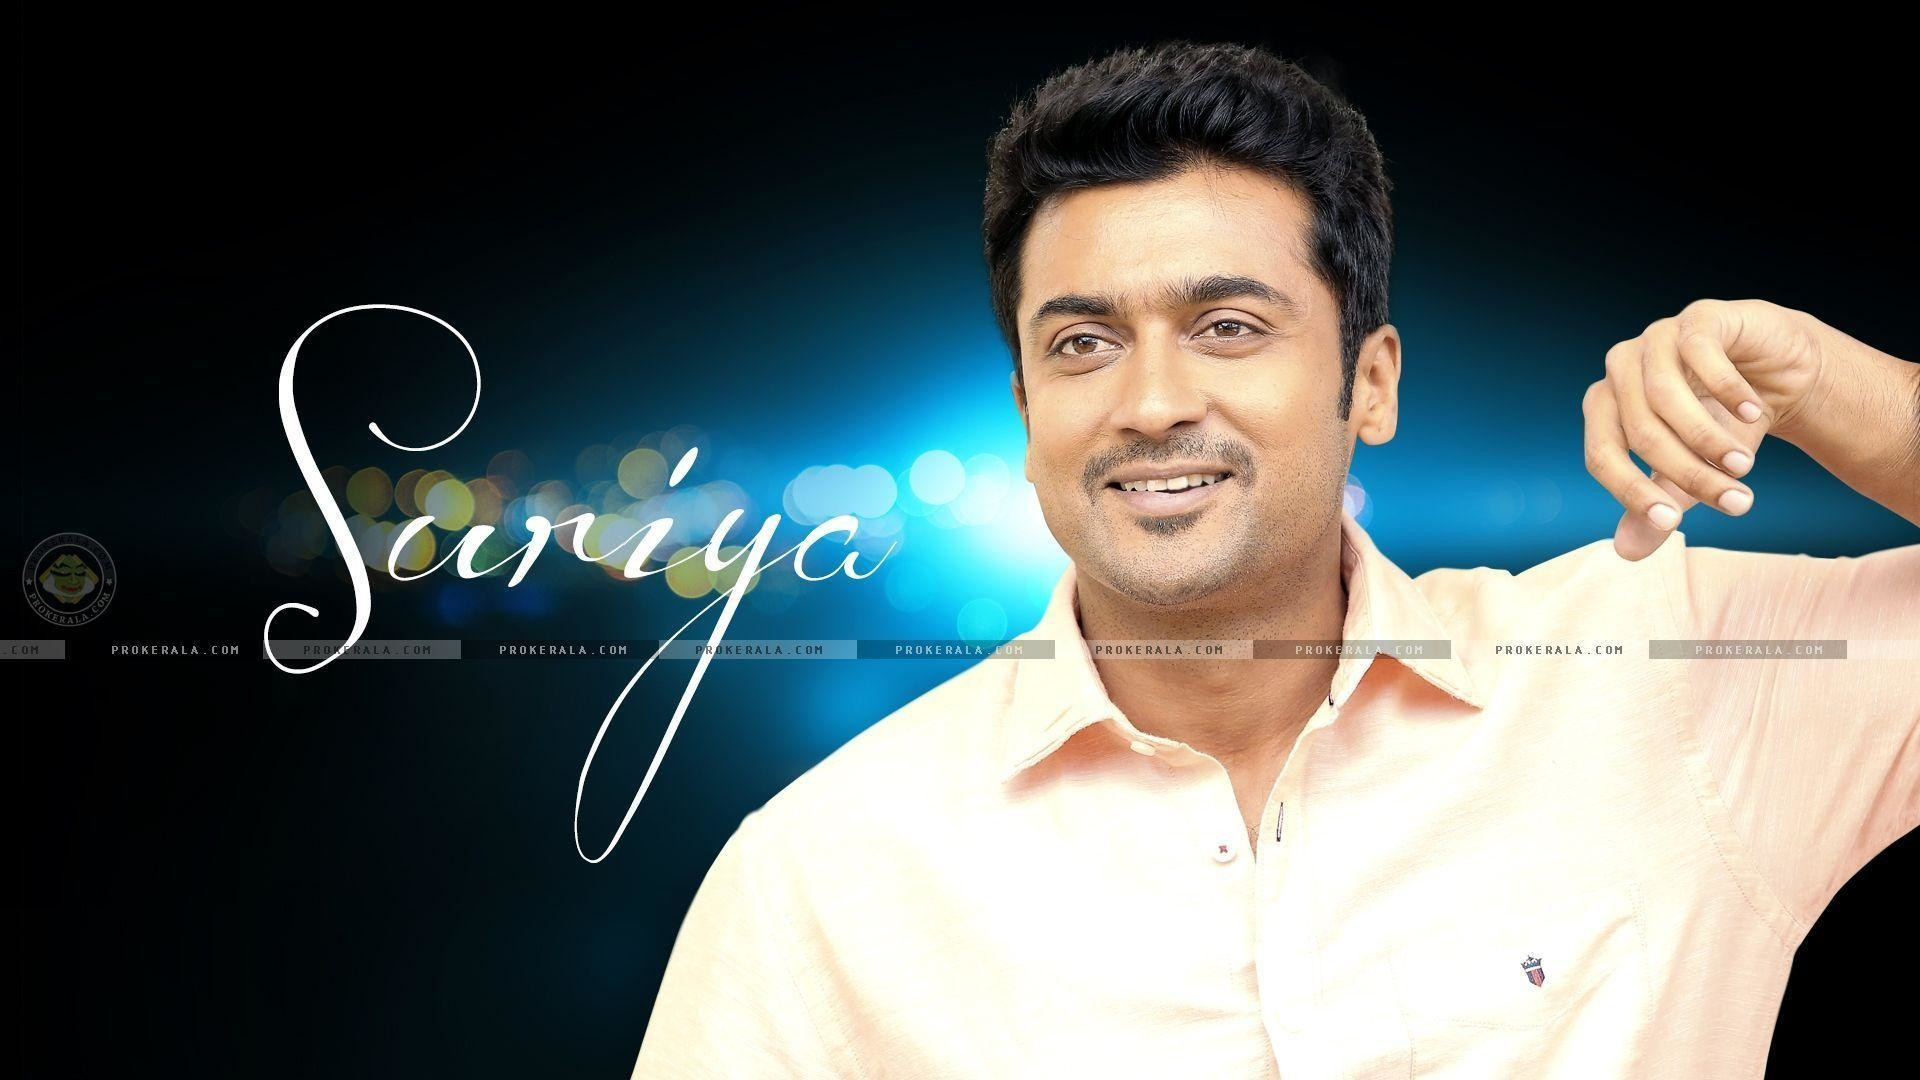 Surya hd wallpaper 2018 surya wallpaper altavistaventures Image collections